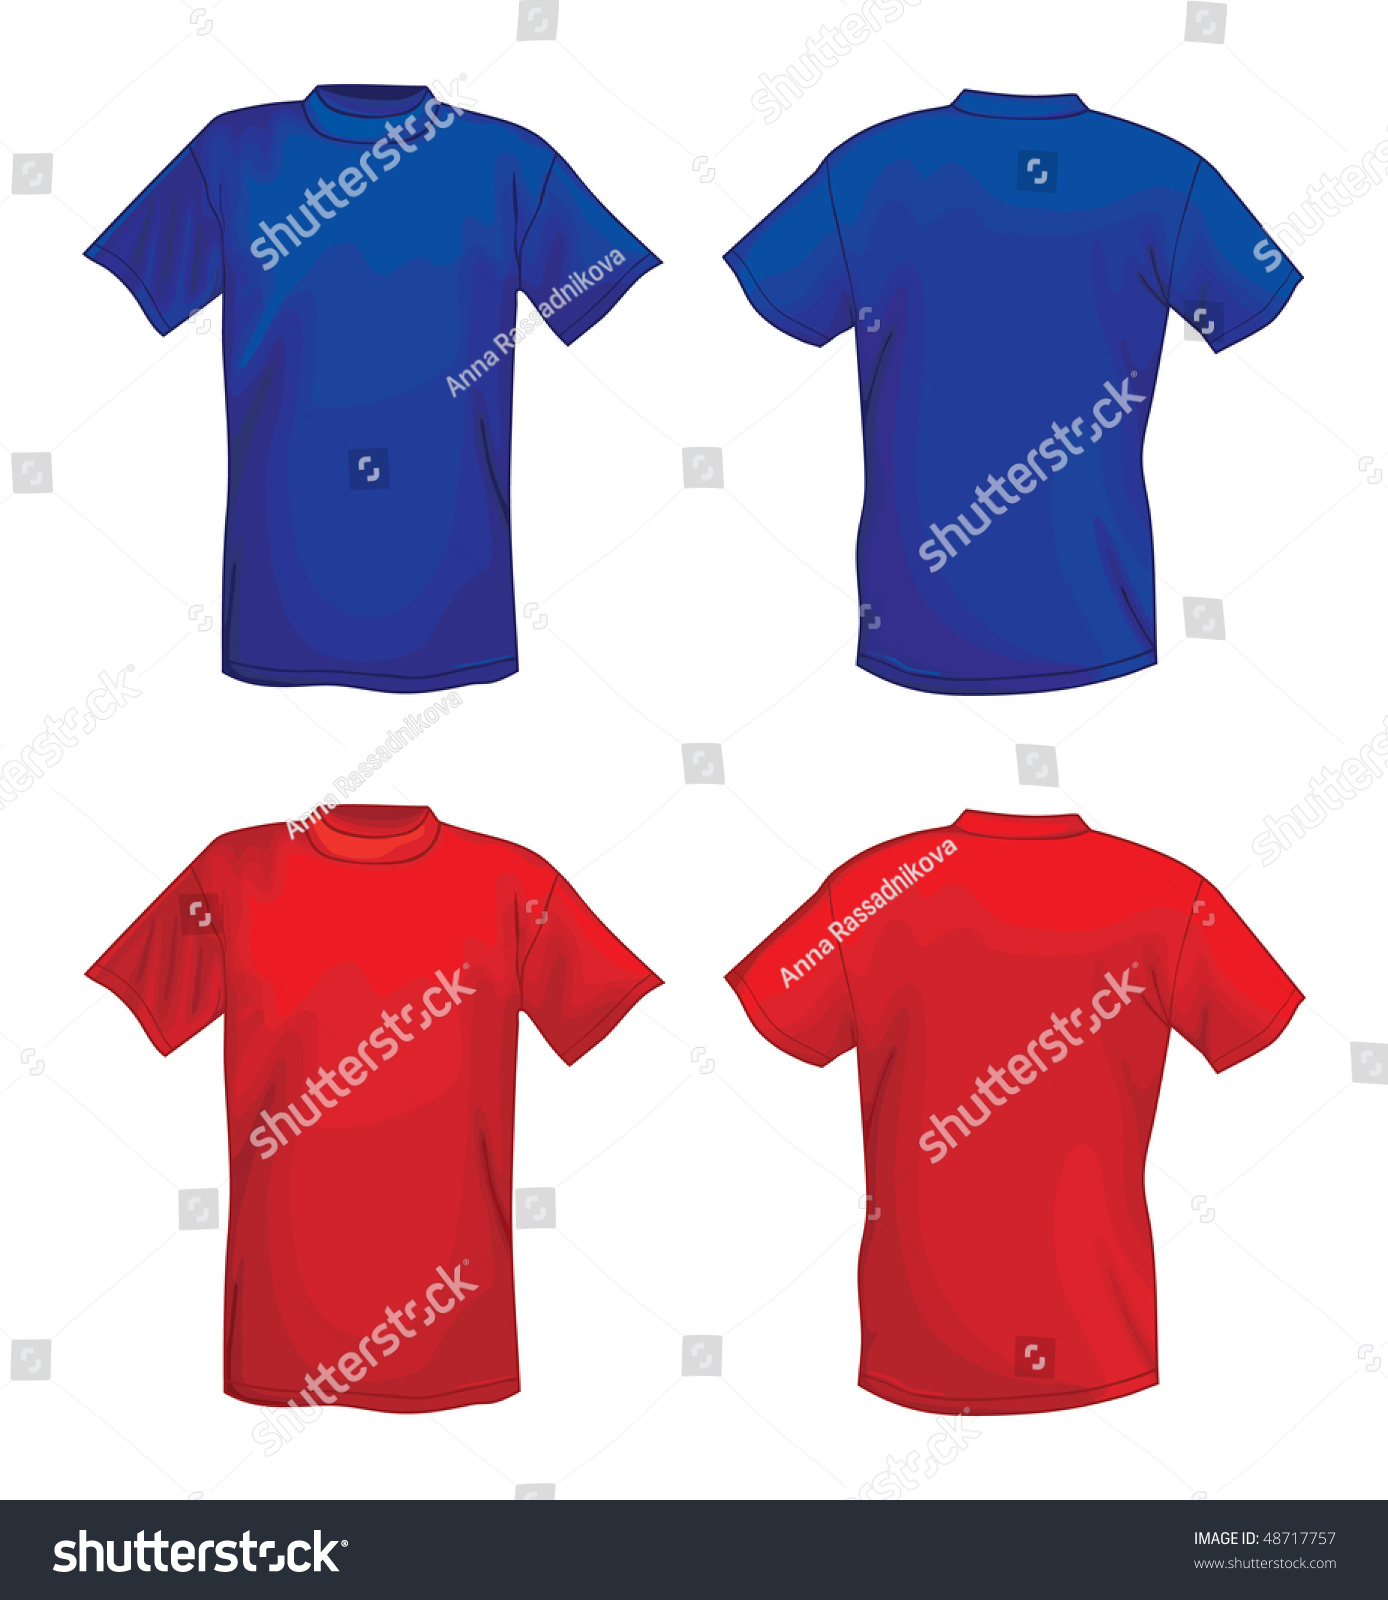 T shirt design red - Blue And Red Vector T Shirt Design Template Front Back